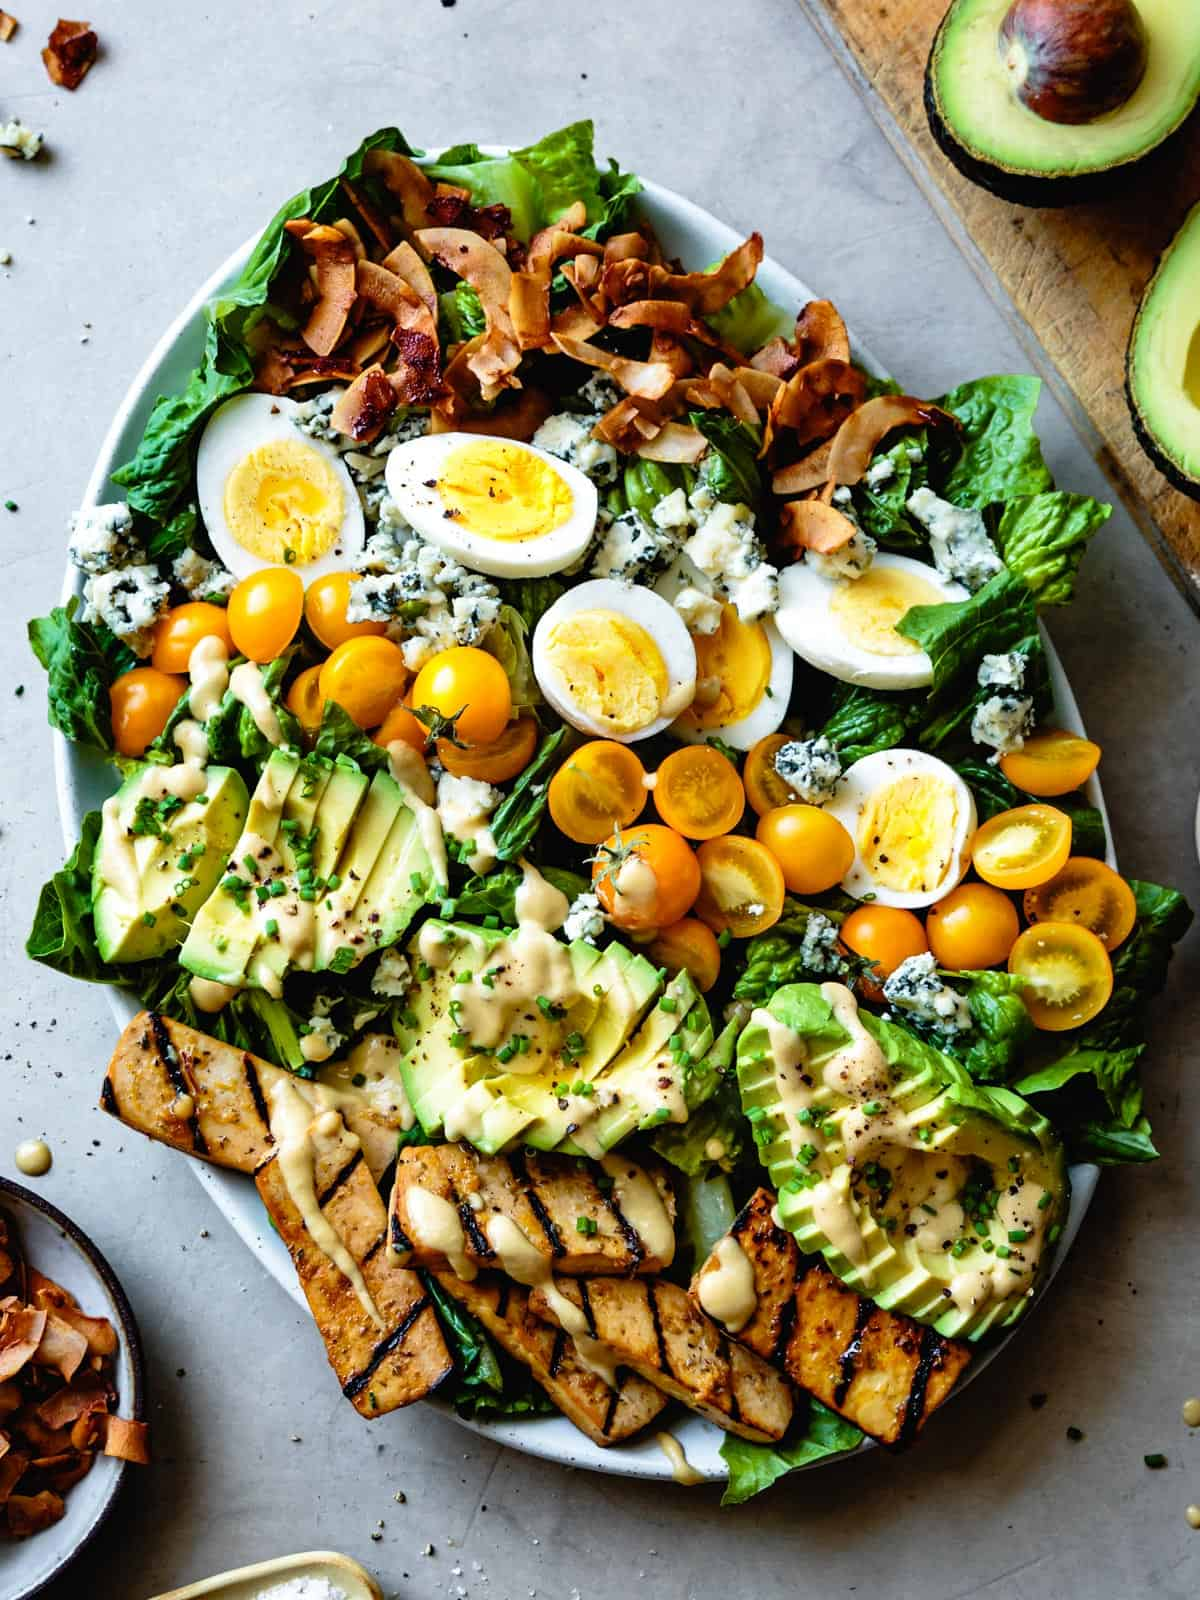 Vegetarian Cobb Salad with Grilled Tofu & Coconut Bacon